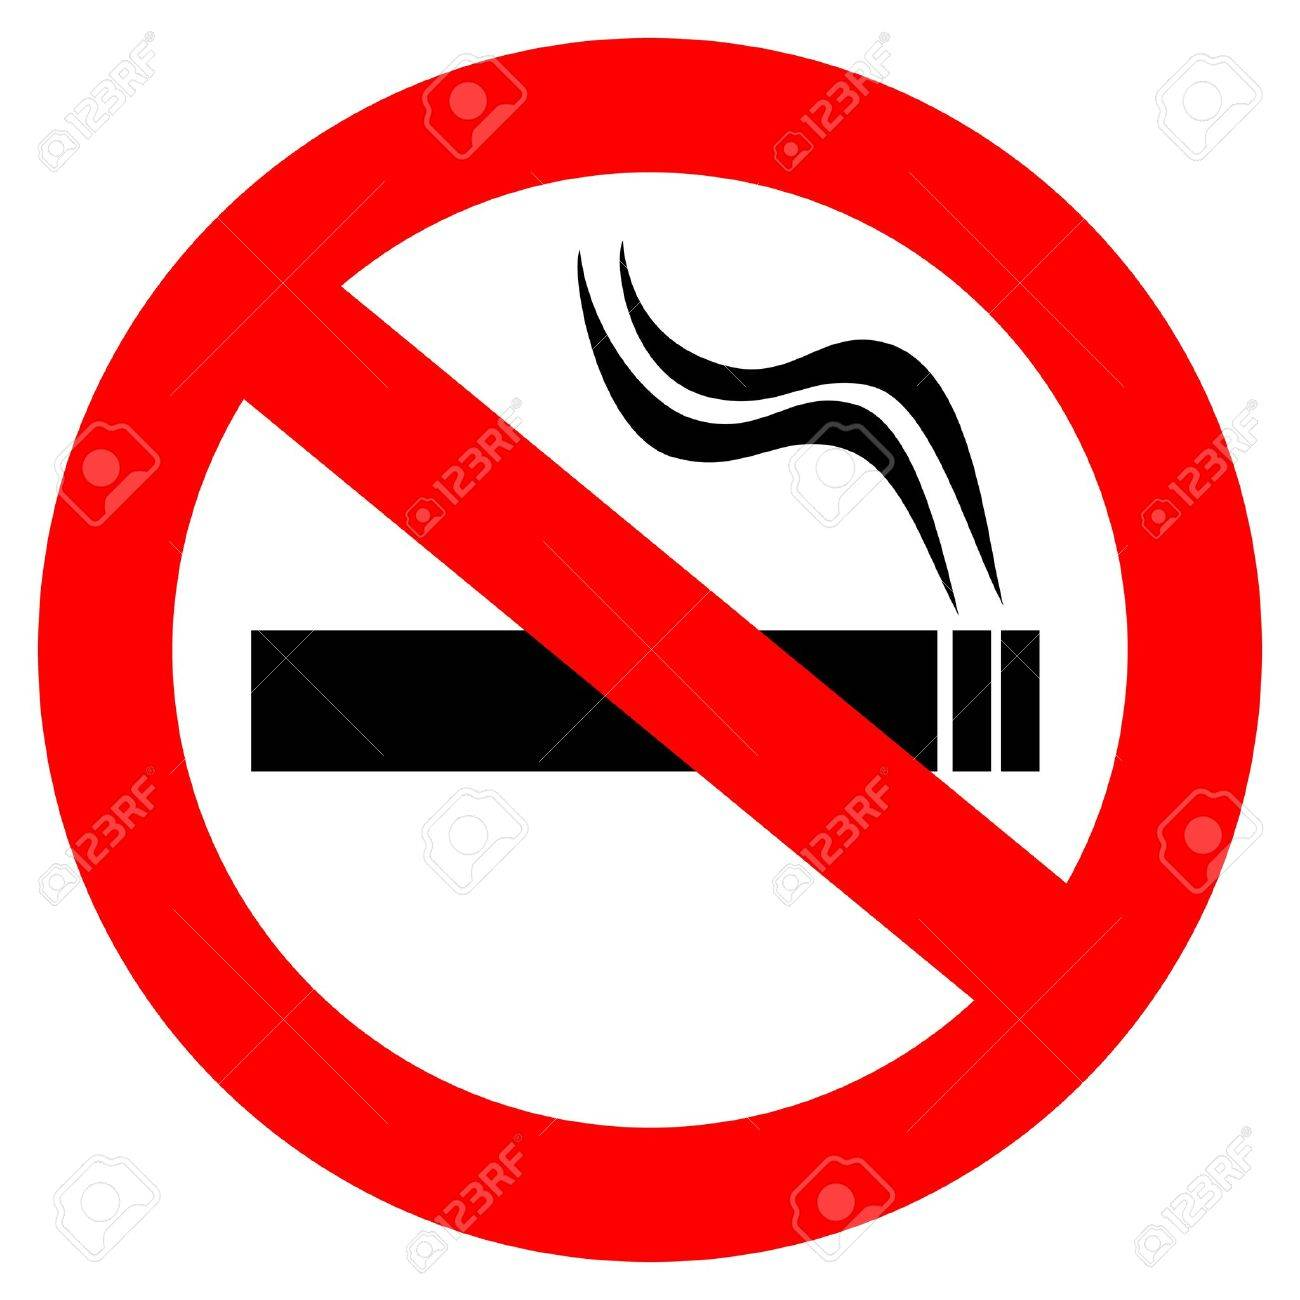 No Smoking Sign Royalty Free Cliparts, Vectors, And Stock ...